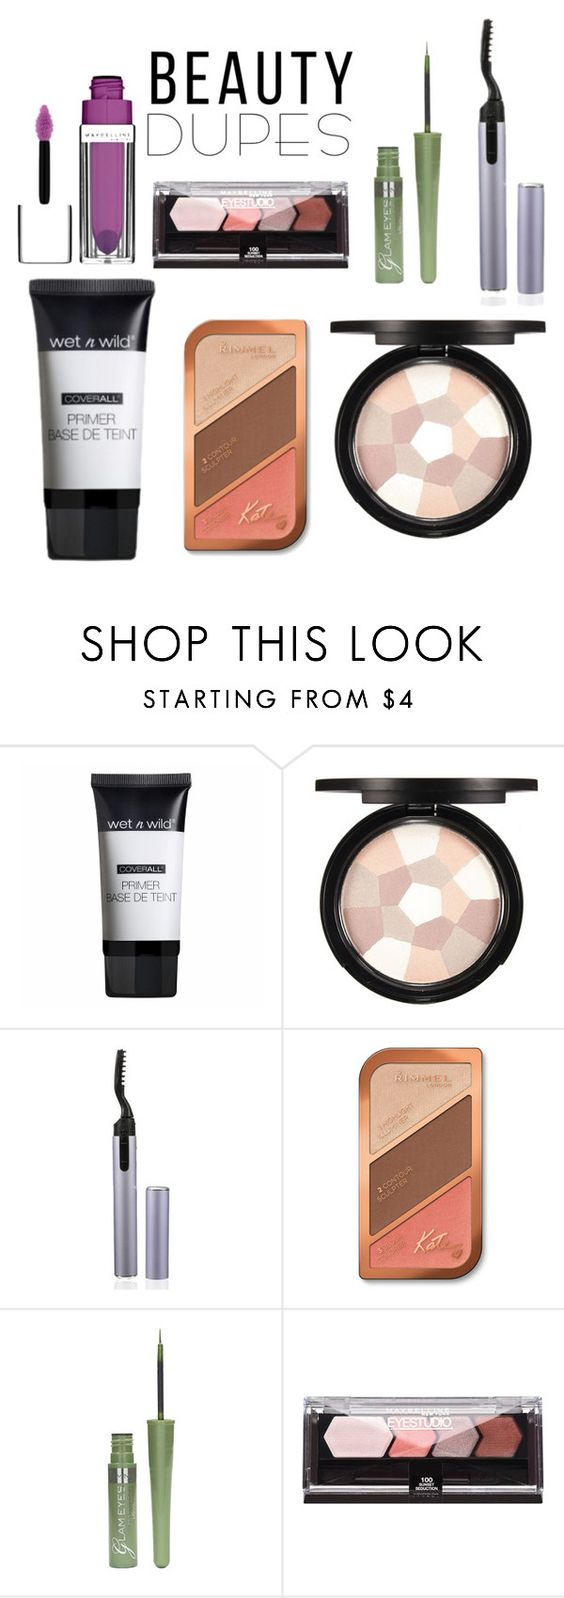 """""""Sans titre #1084"""" by vubaotramanh ❤ liked on Polyvore featuring beauty, Wet n Wild, Rimmel, Maybelline and beautydupes"""